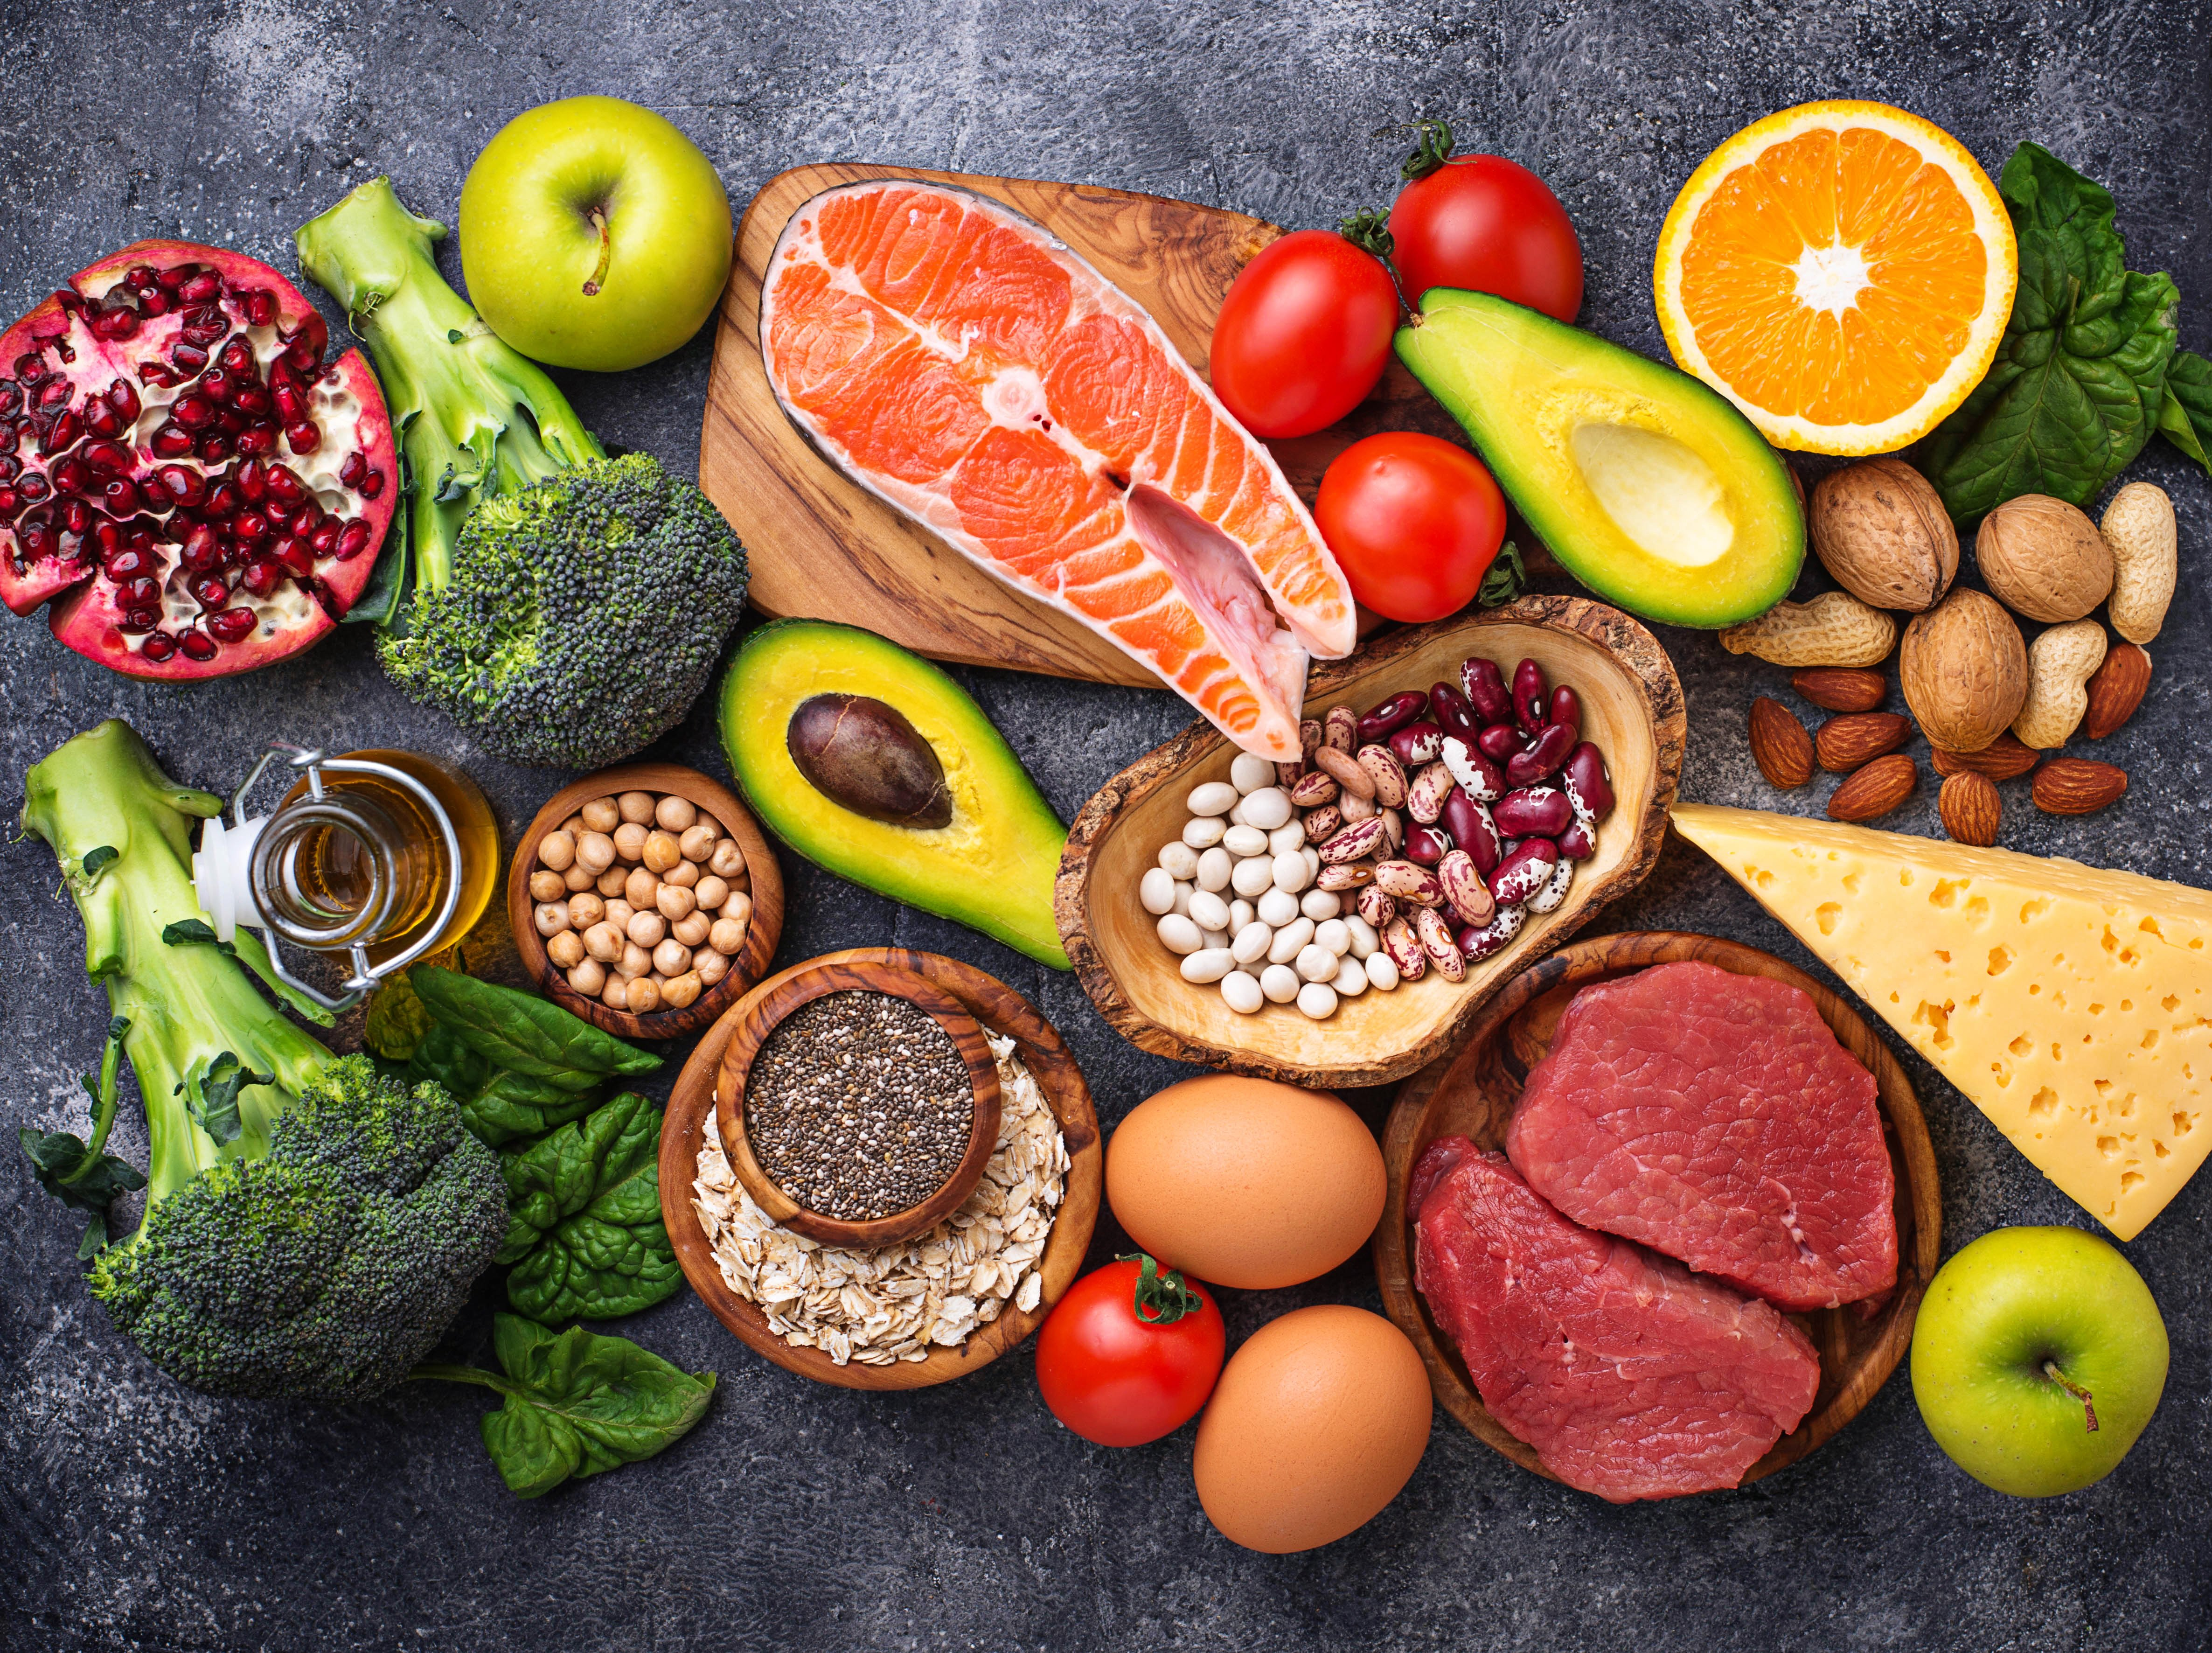 assortment of fruits and healthy foods